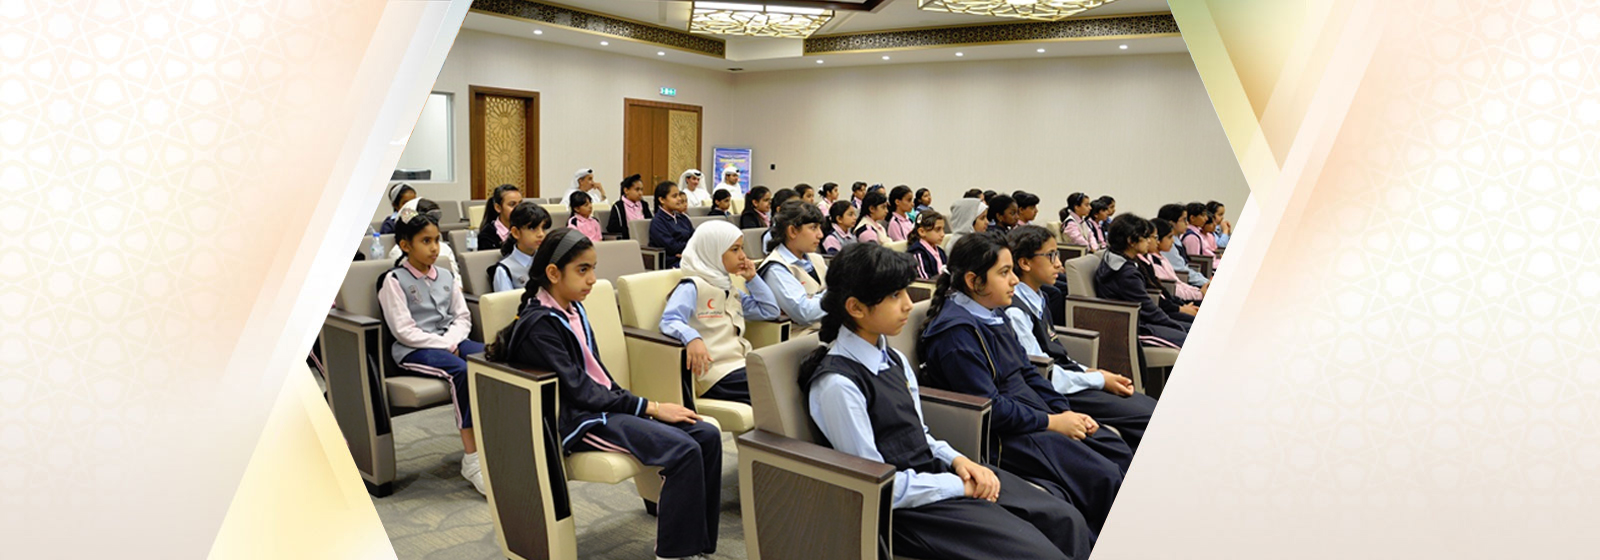 NCEMA organizes a lecture on The proper conduct to address crises and disasters for schools students